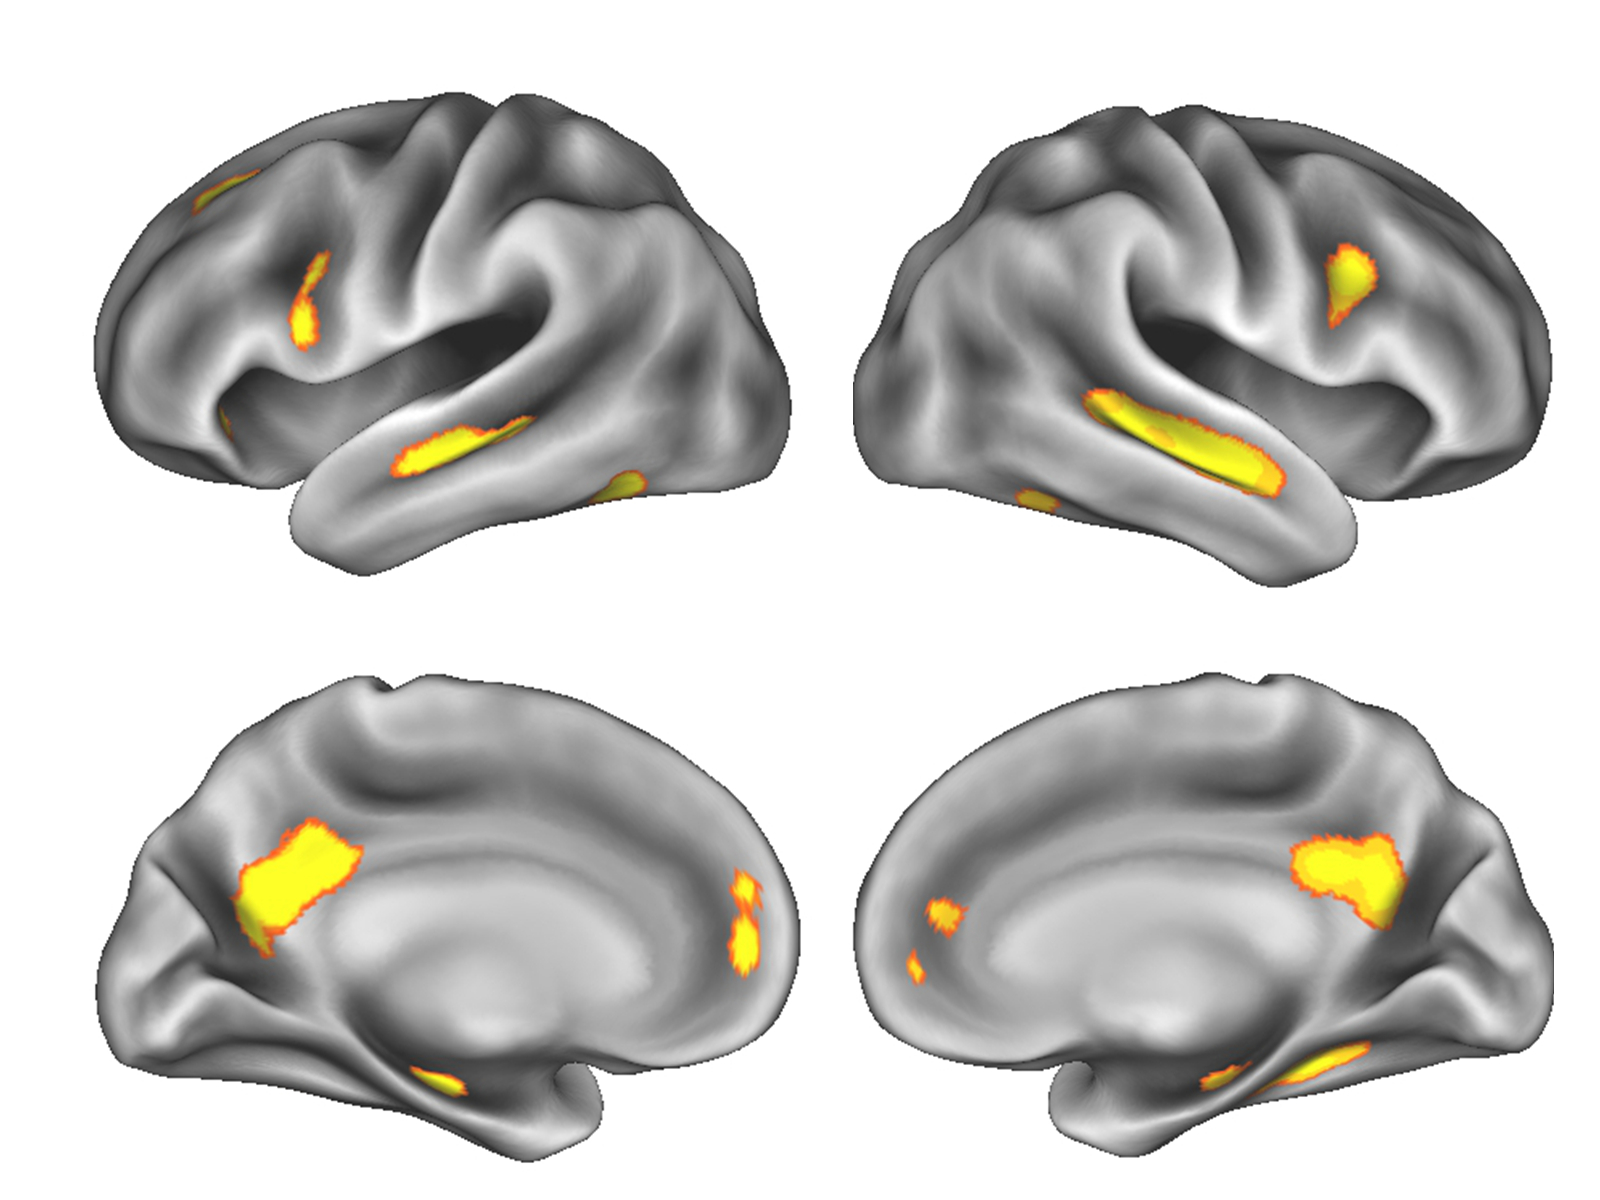 medium resolution of image of gray matter changes in the brain during pregnancy